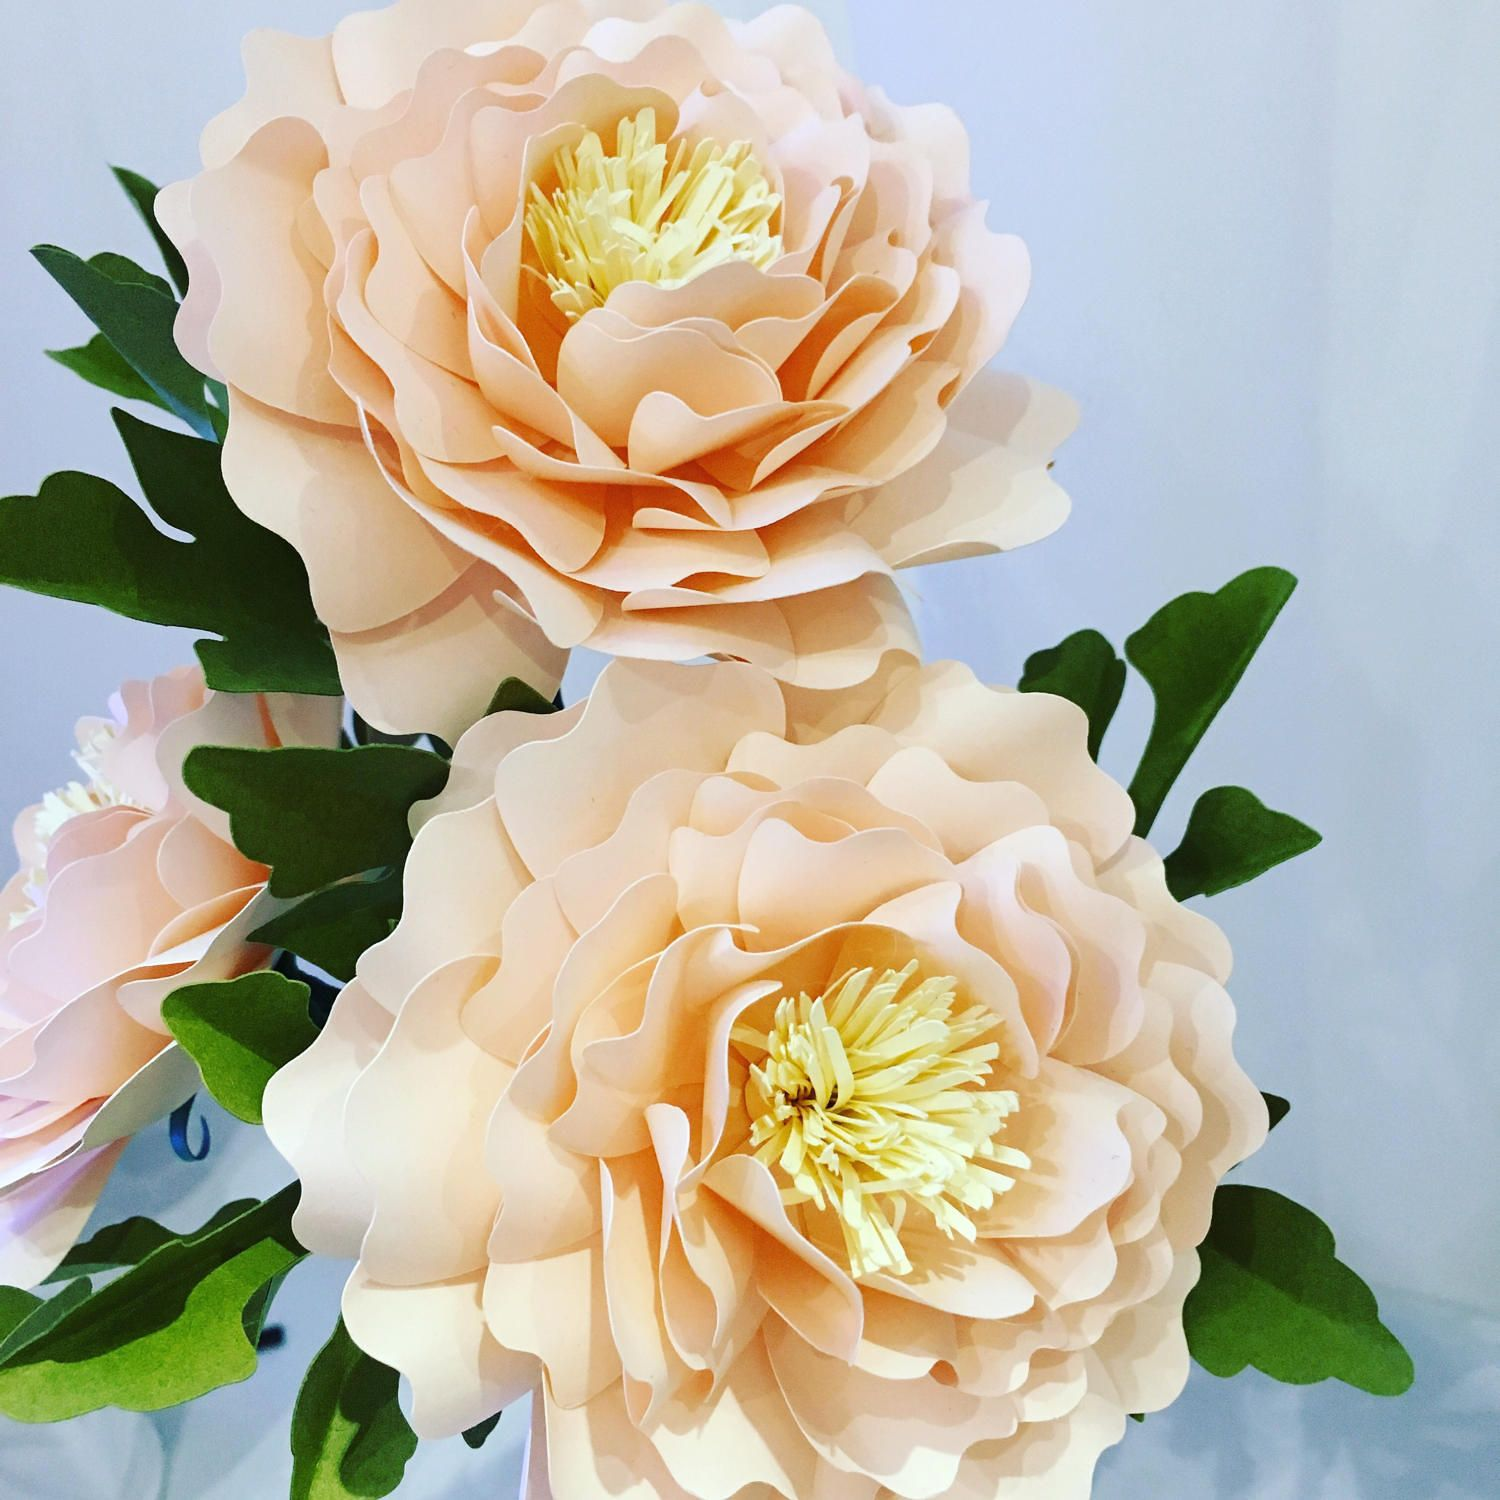 paper flower bouquets for weddings, backdrops, boutonnieres, paper flower decorations   by 2clvrdesigns on Etsy